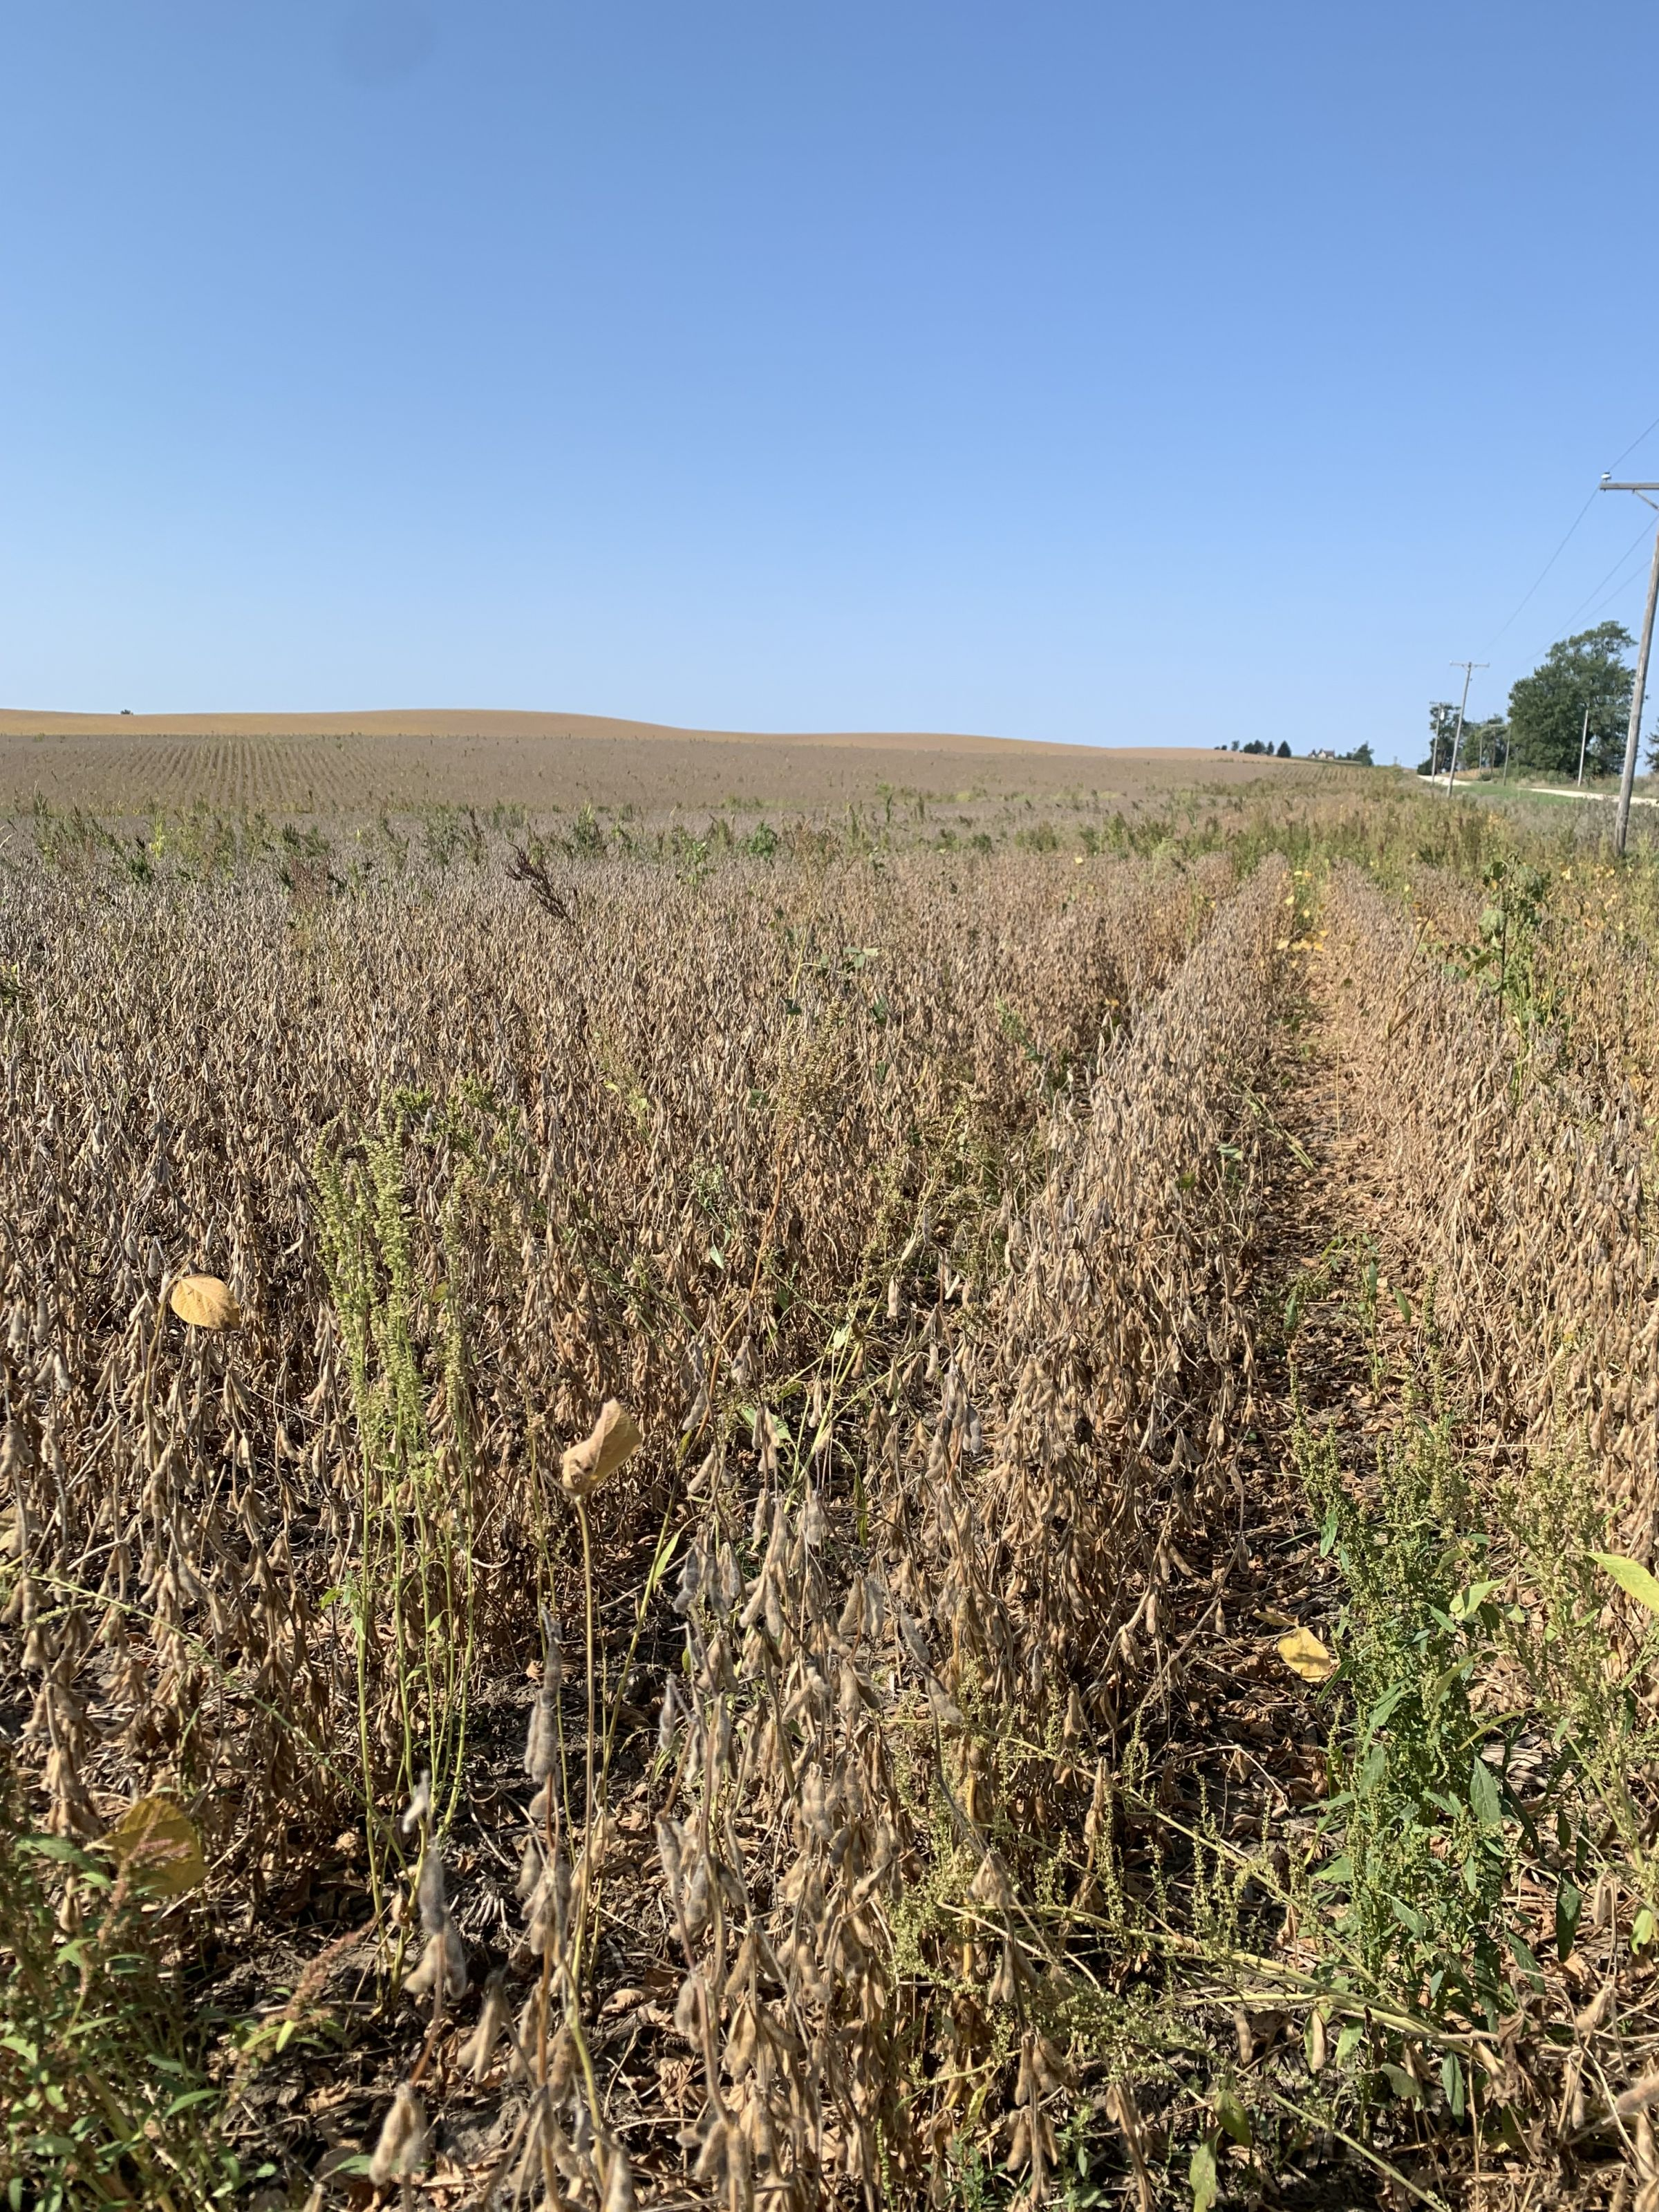 auctions-jackson-county-iowa-79-acres-listing-number-15751-1-2021-09-21-152719.jpg